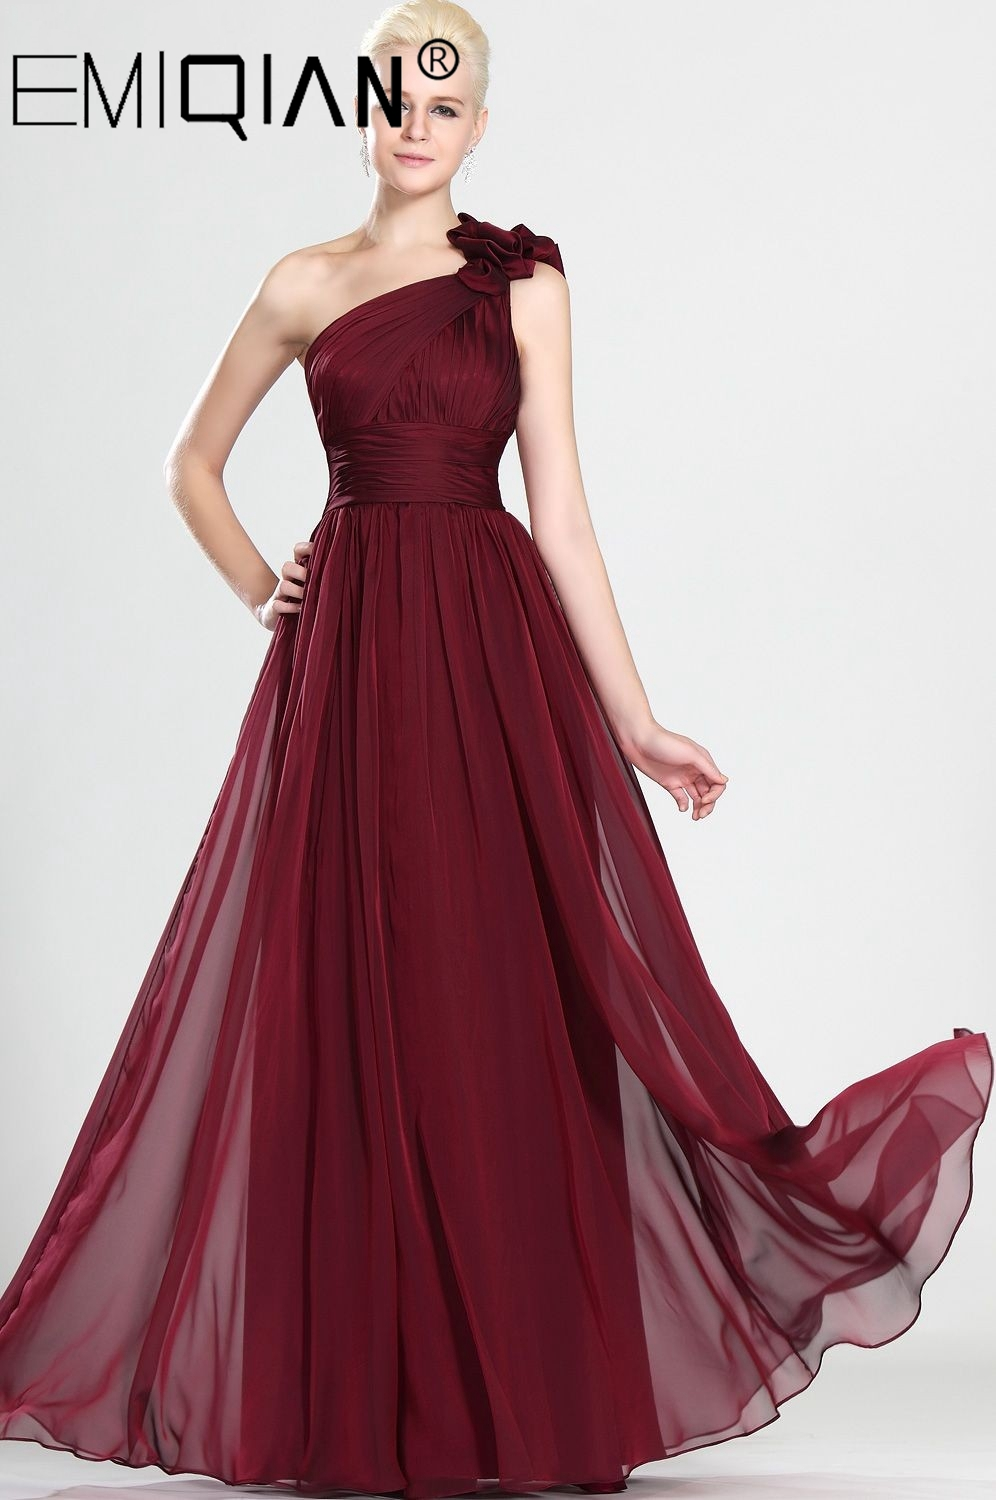 Elegant A Line Burgundy Chiffon Evening Gowns With Hand Made Flowers, Simple One Shoulder Pleated Bodice Prom Dresses